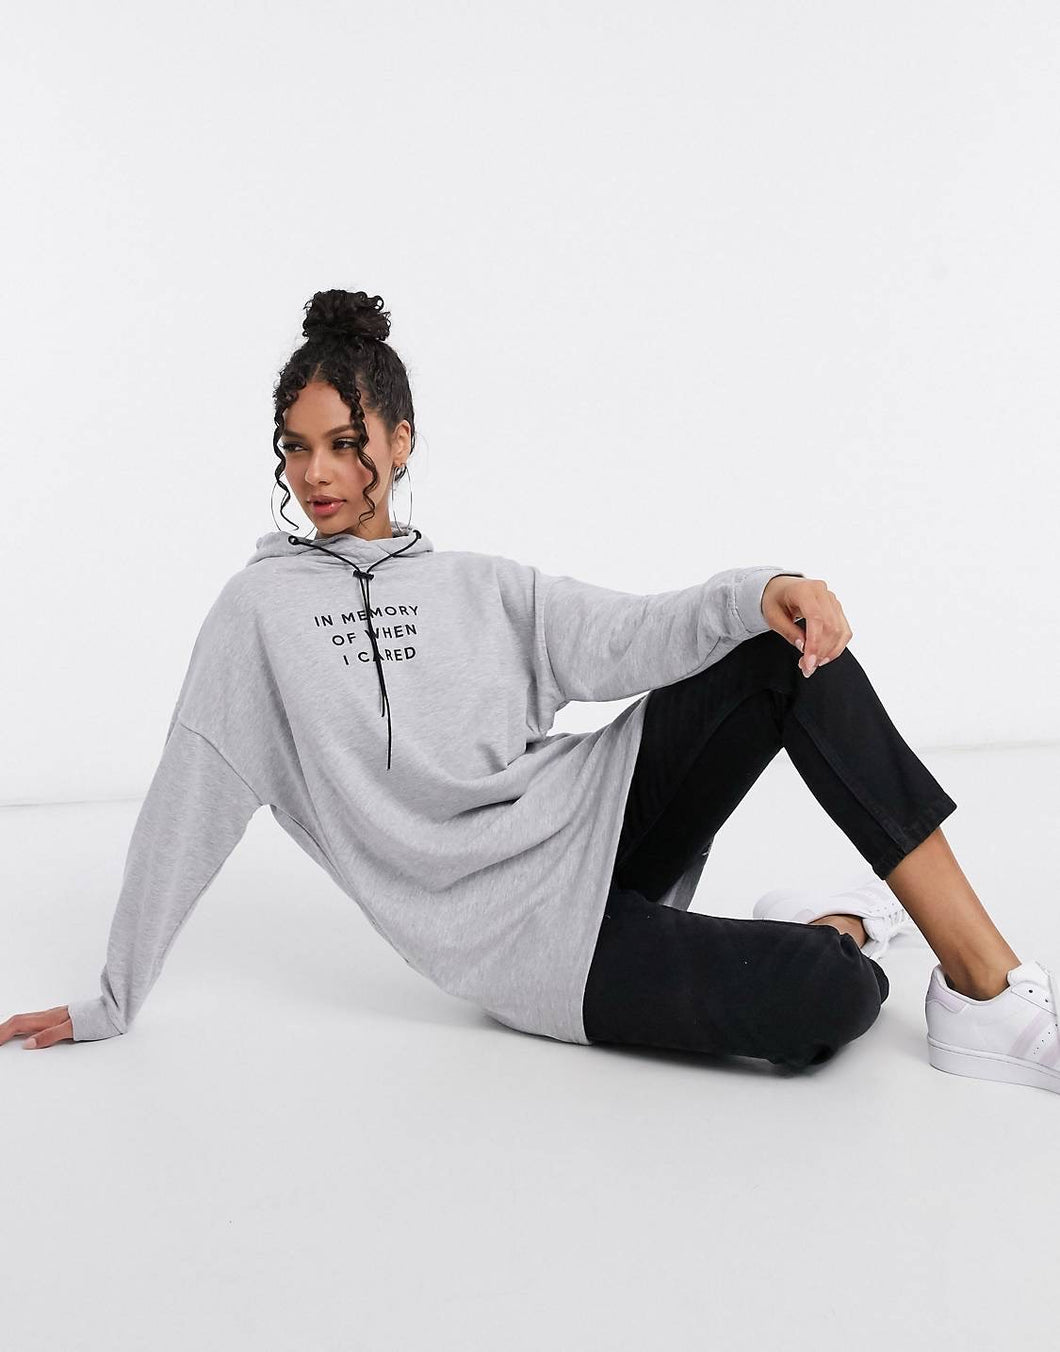 NIGHT ADDICT GREY 'IN MEMORY OF WHEN I CARED' HOODIE DRESS FRONT